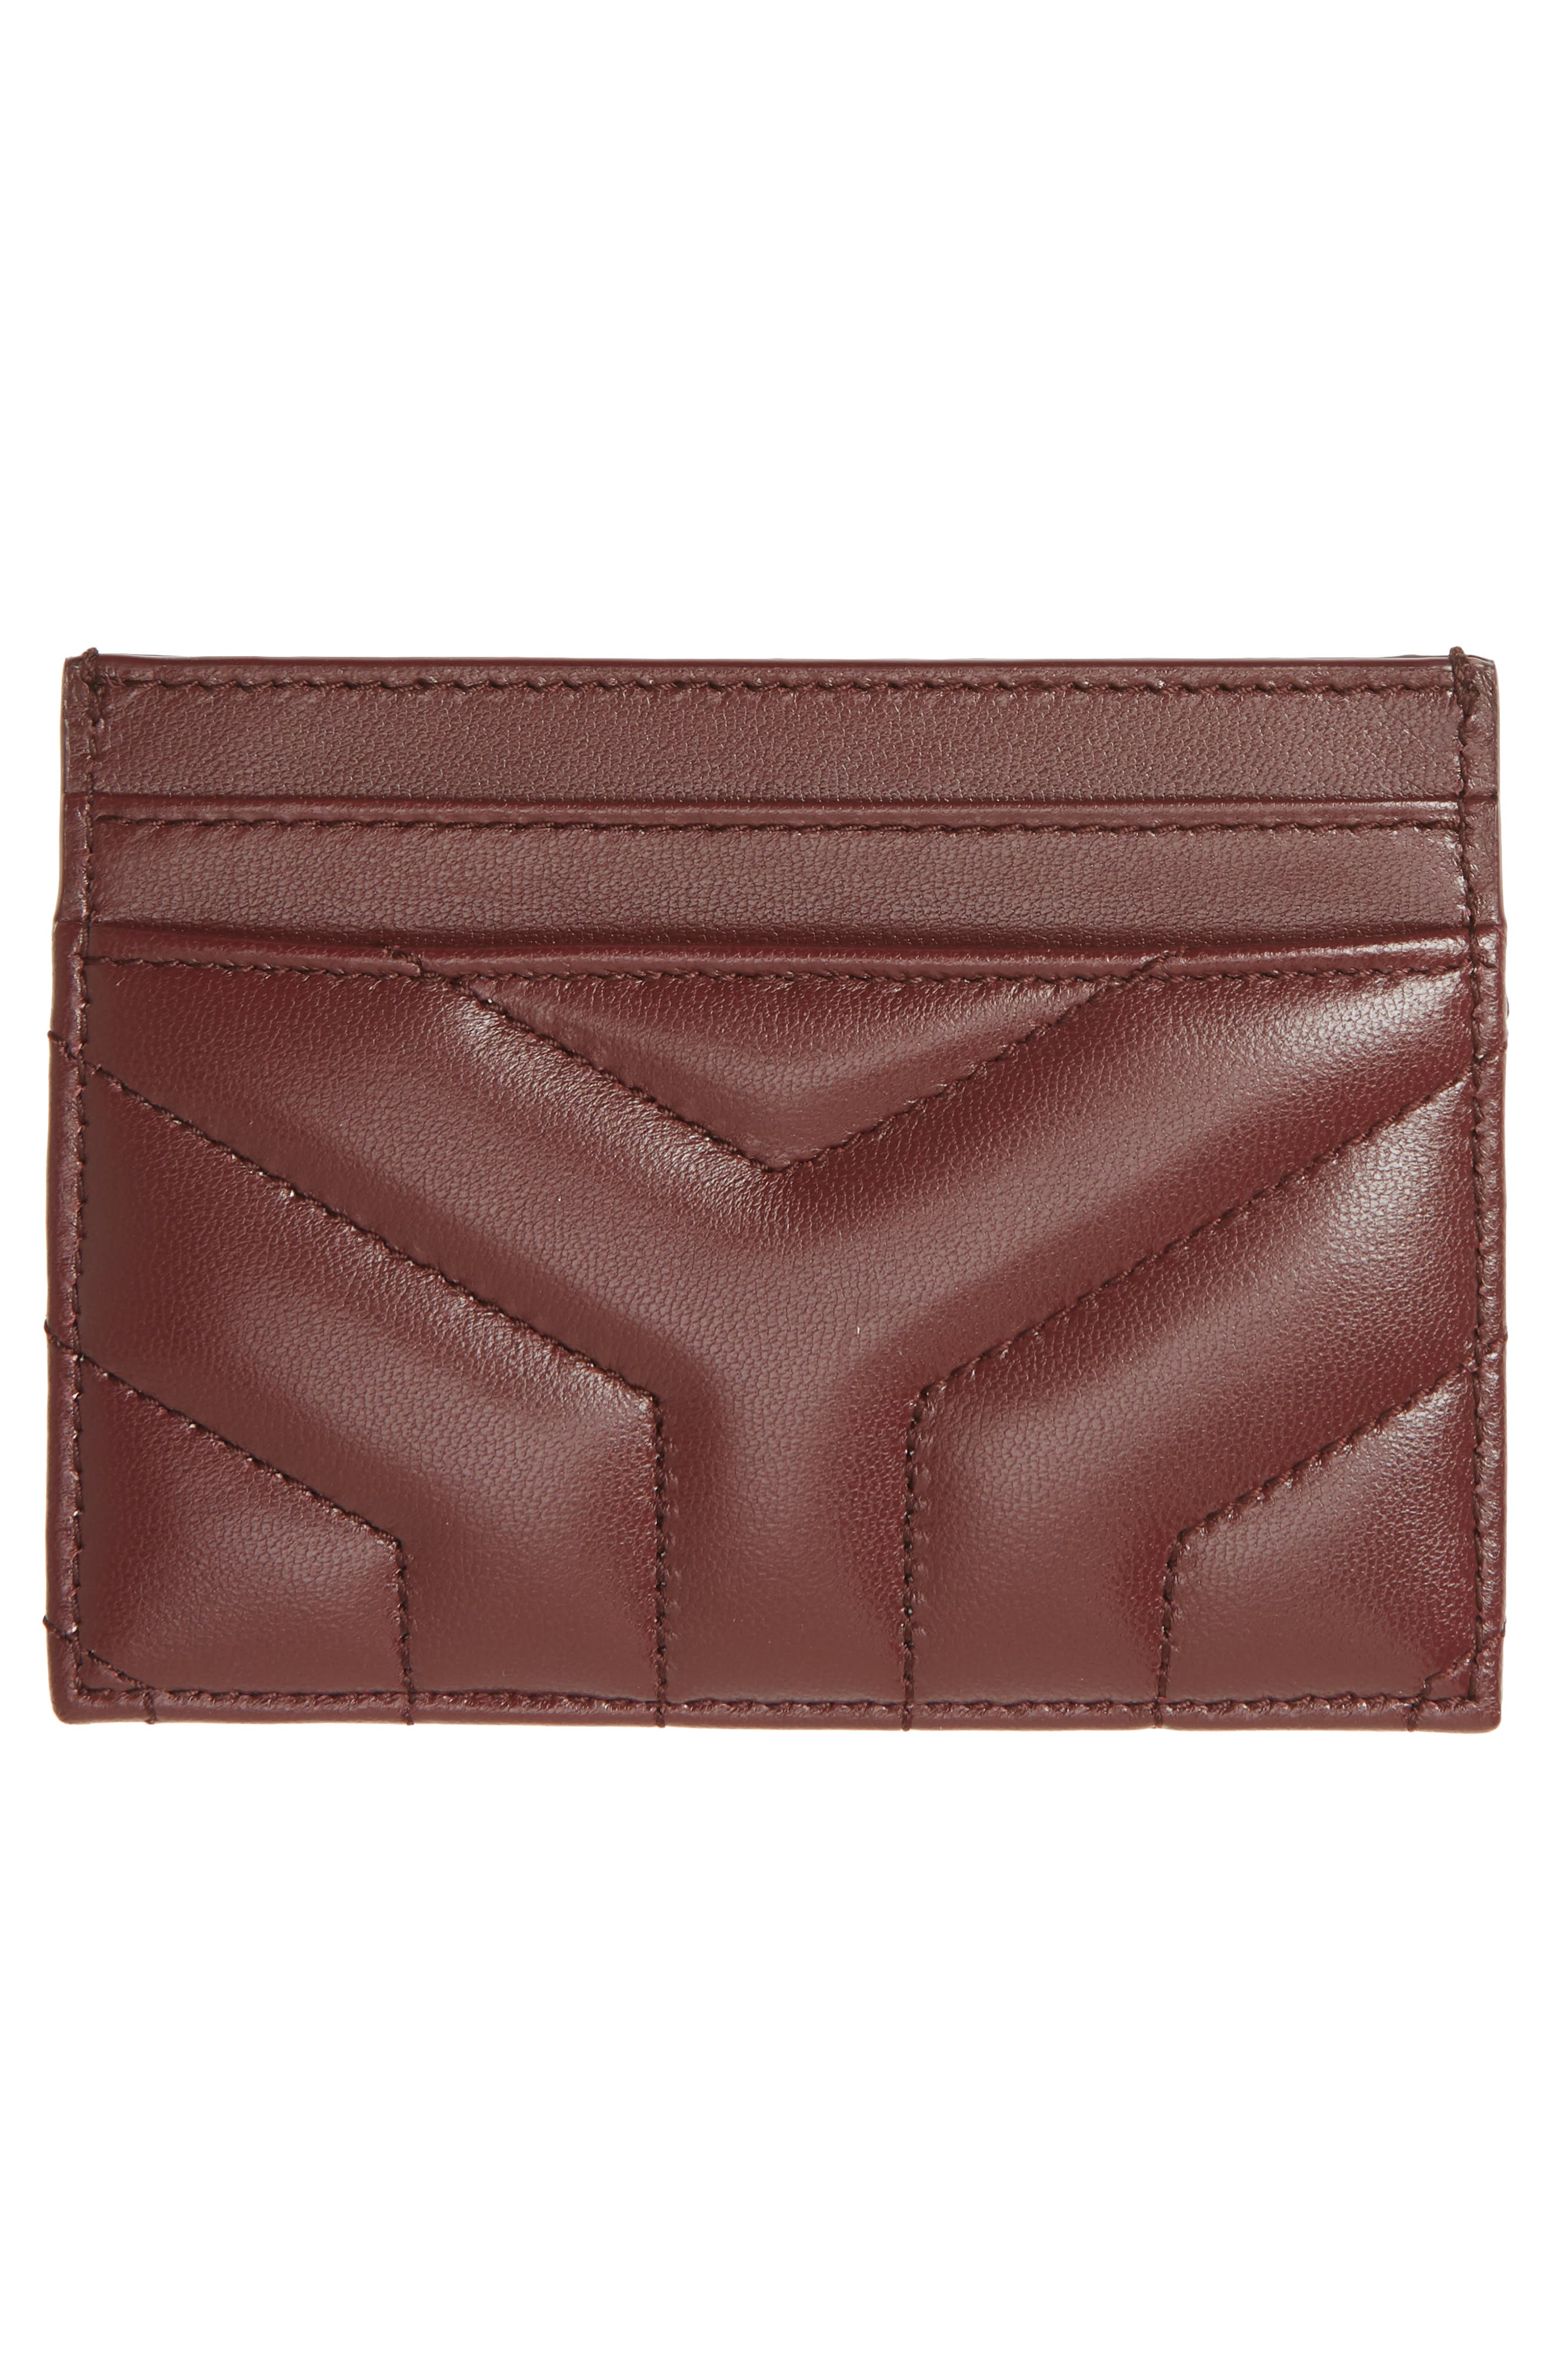 Loulou Monogram Quilted Leather Credit Card Case,                             Alternate thumbnail 2, color,                             Rouge Legion